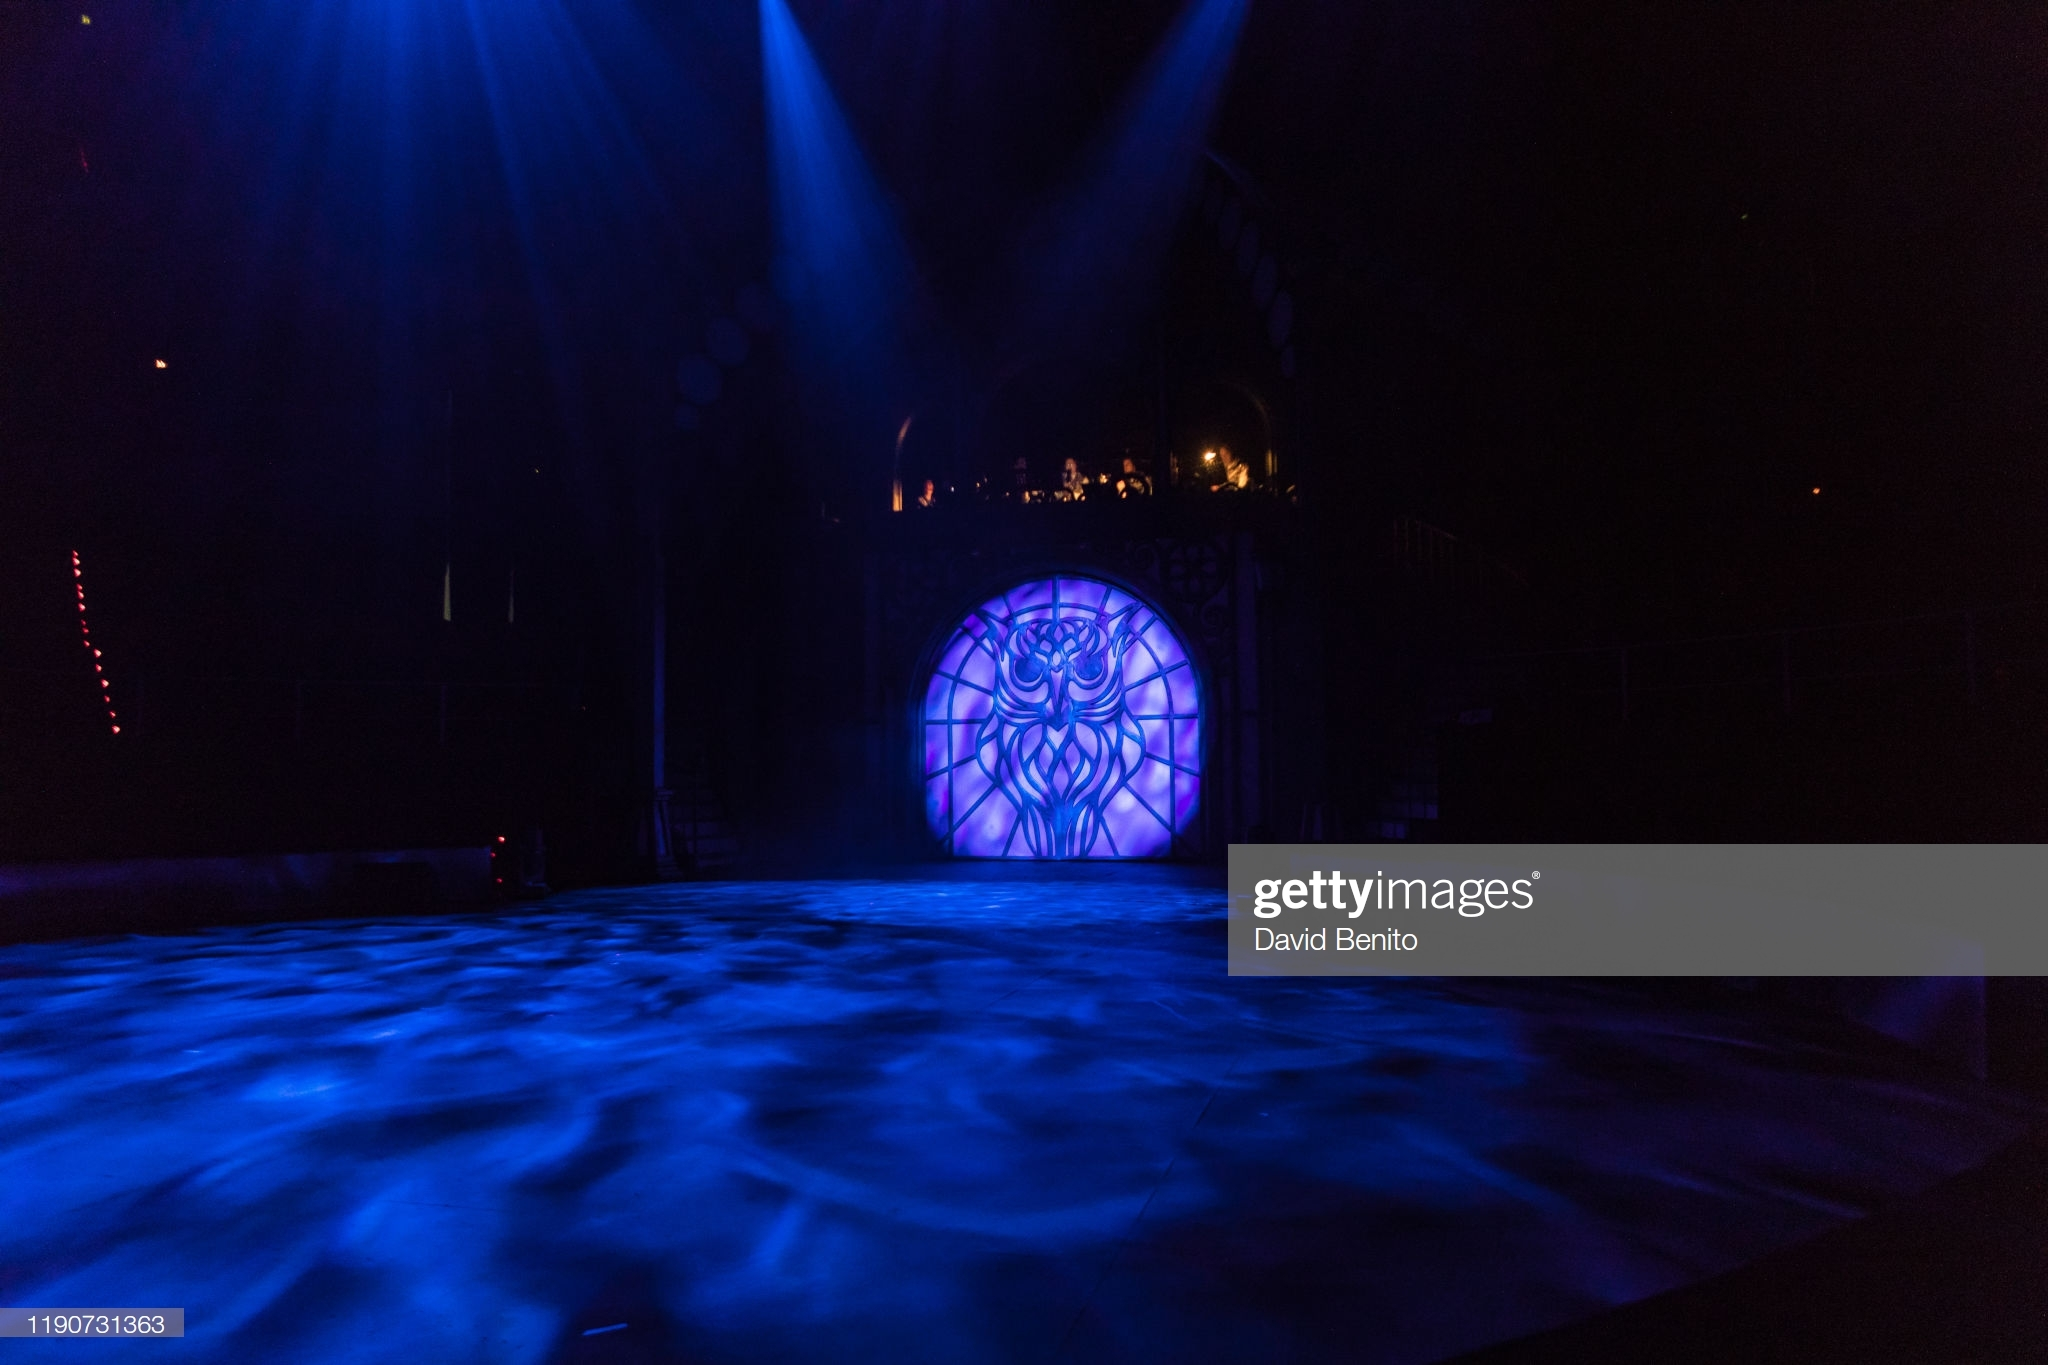 gettyimages-1190731363-2048x2048